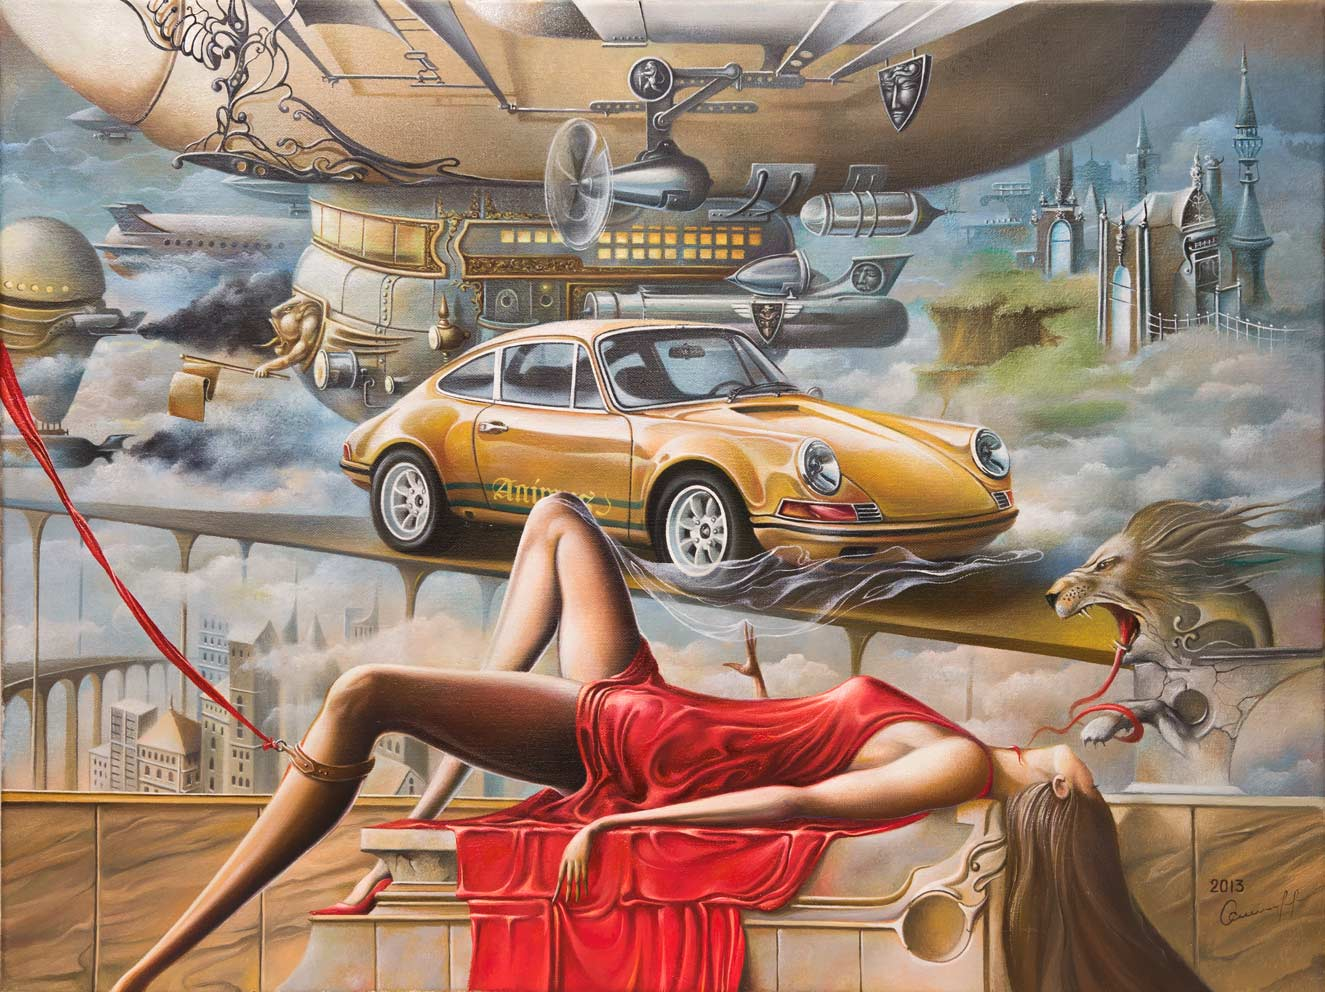 Taxi to the Altar of the Desires, 60x80 cm, oil on canvas, 2013.